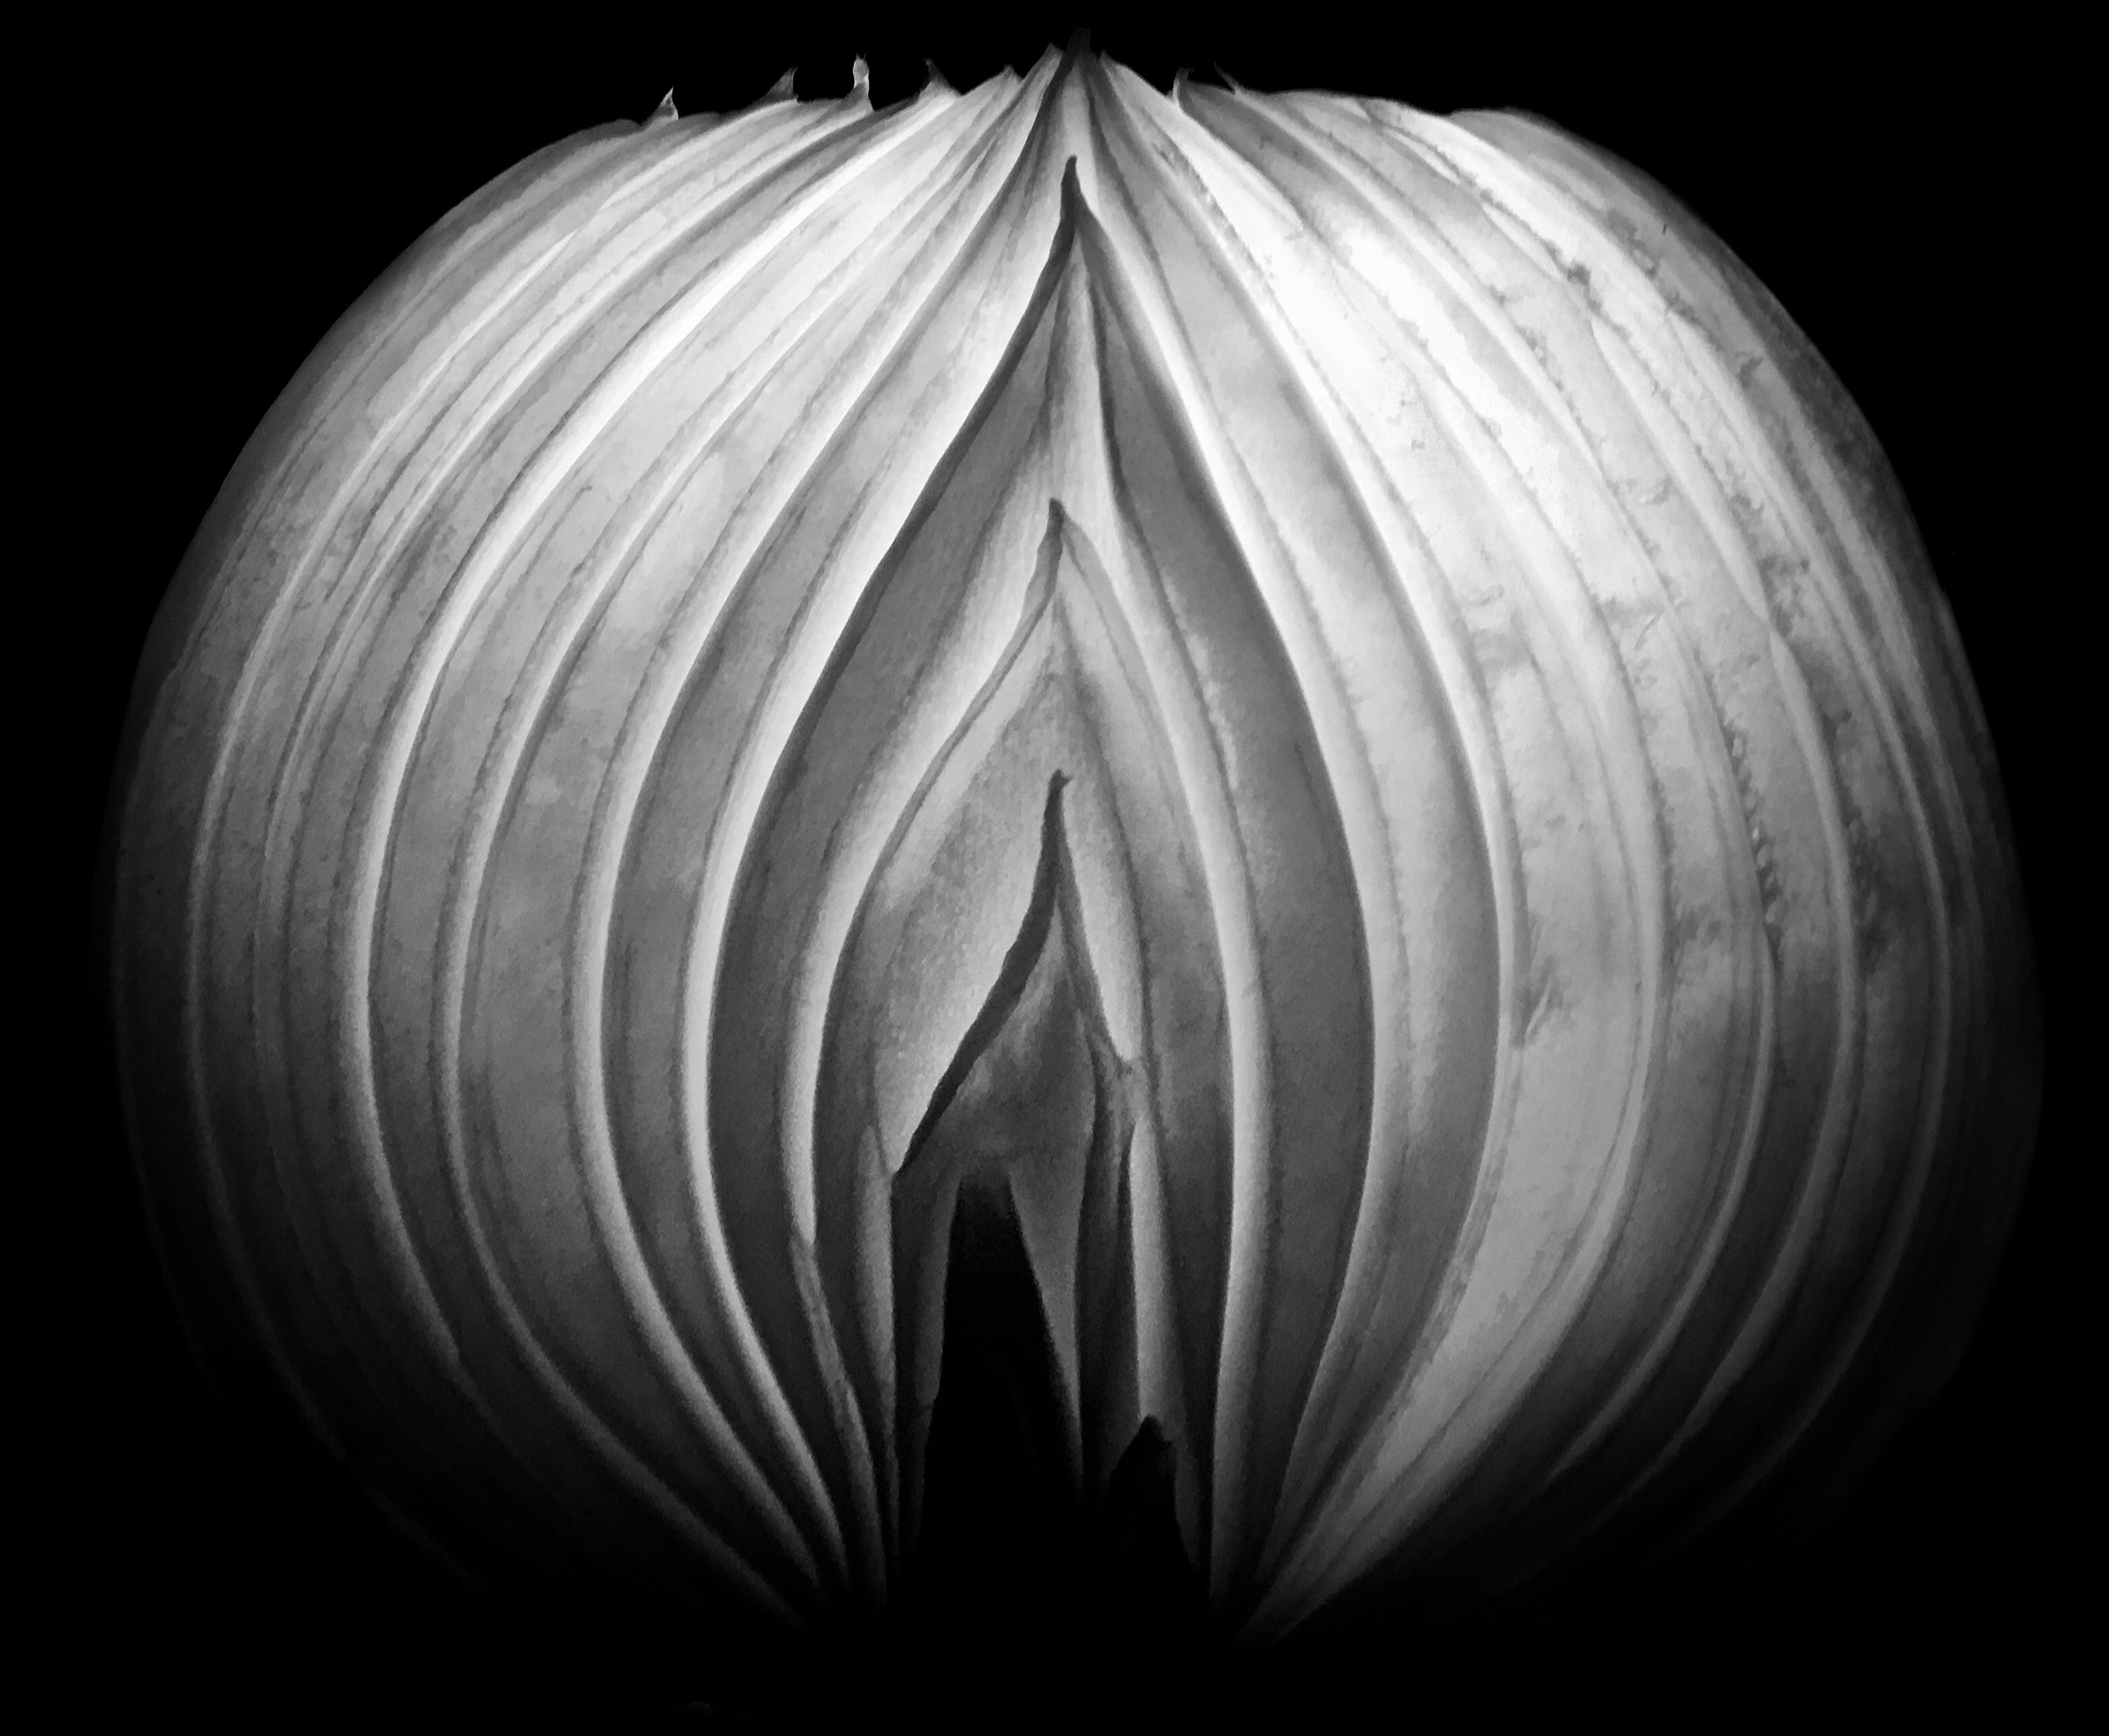 Tiny Immensity #33 - Eternal Flame of the Aging Onion in the Time of Covid ©2020 L. Aviva Diamond